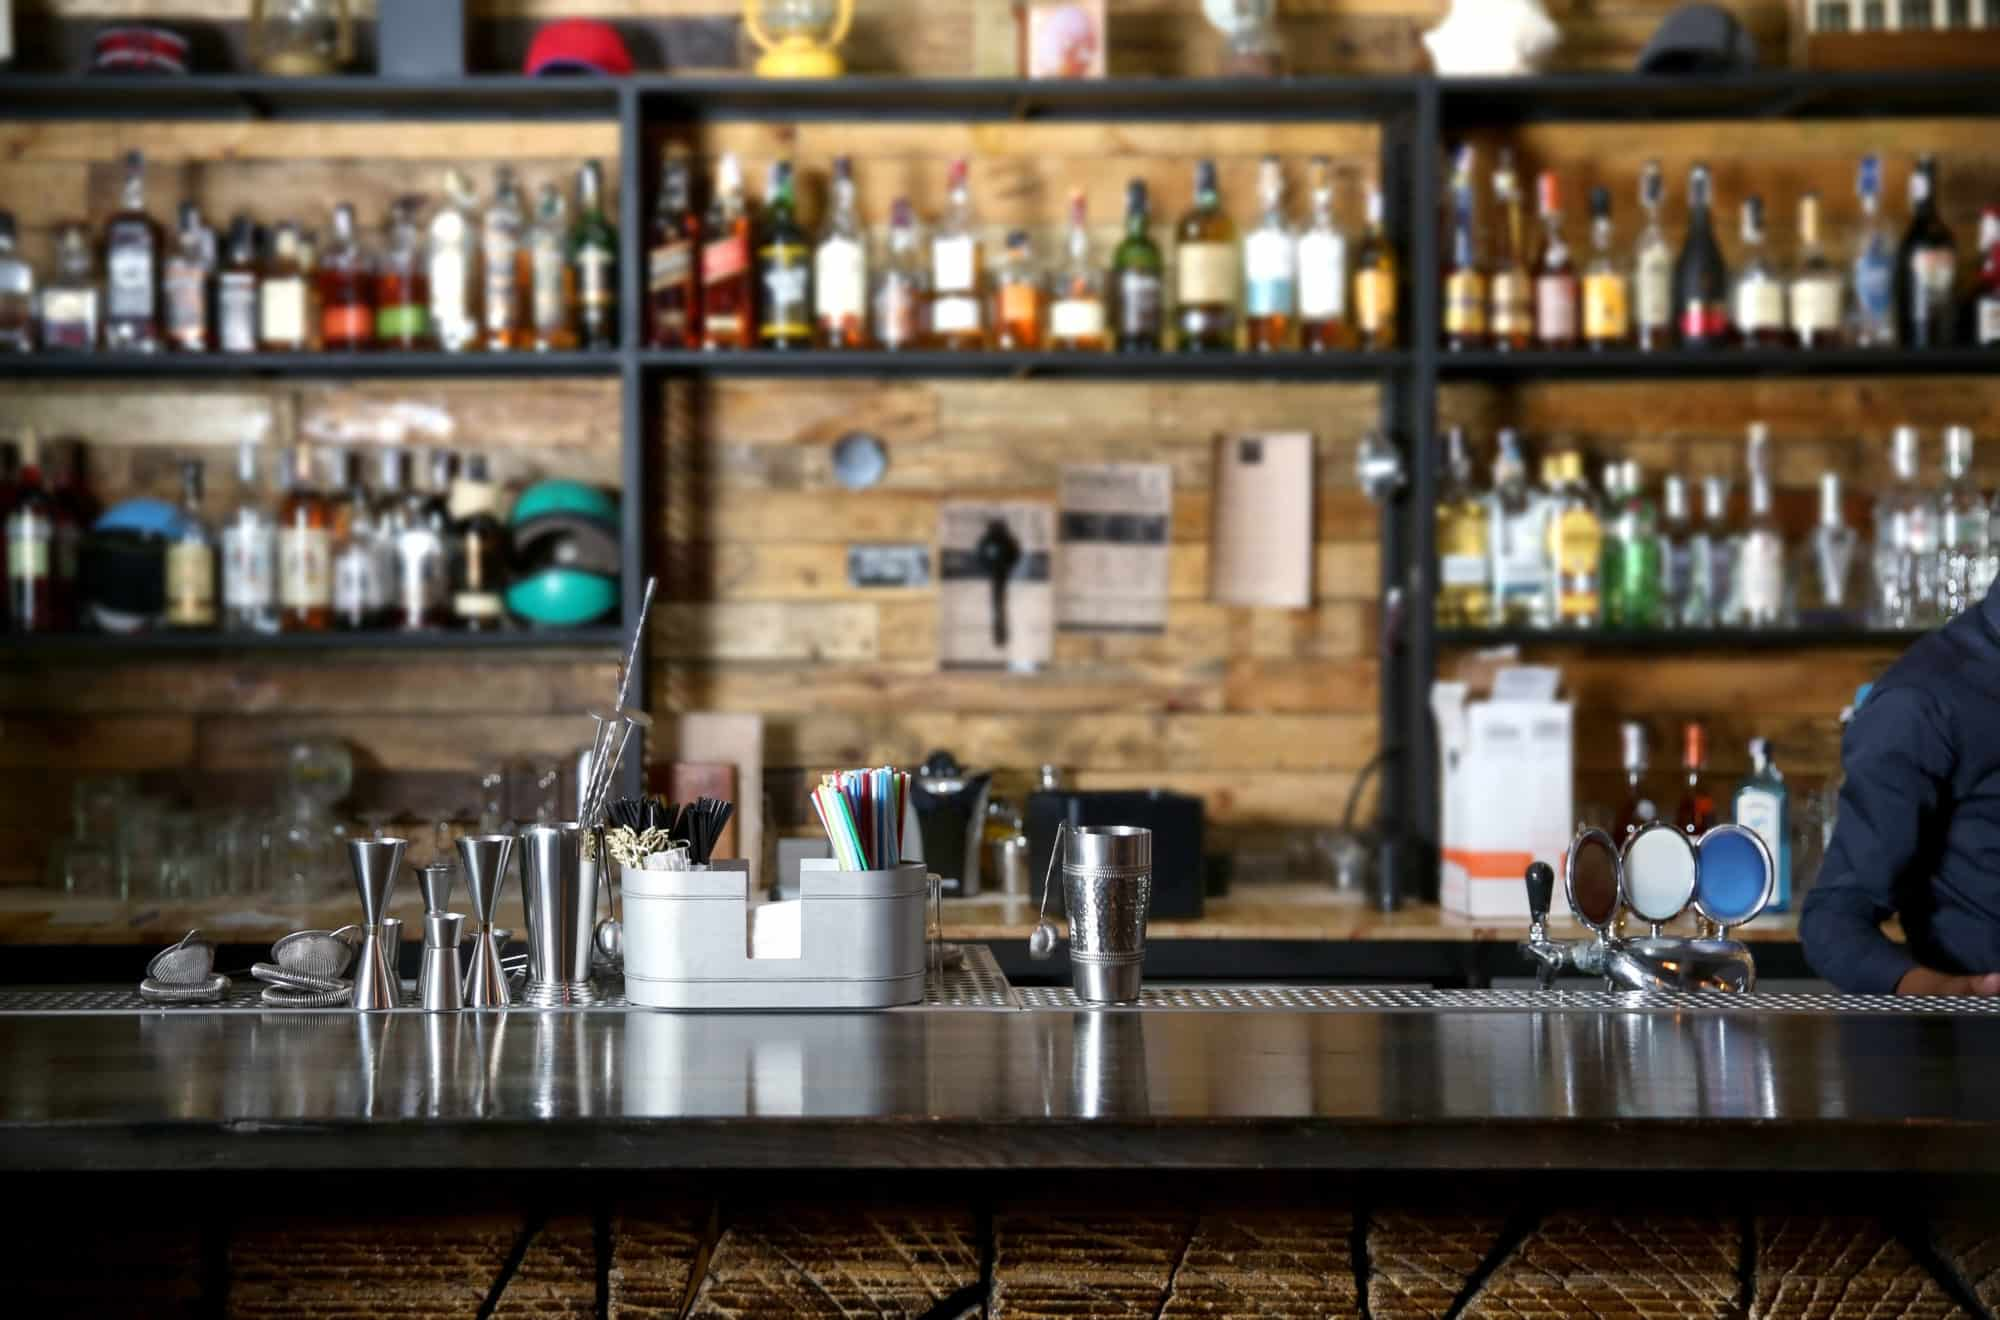 A Behind The Bar Trend Your Business Can?t Afford to Miss